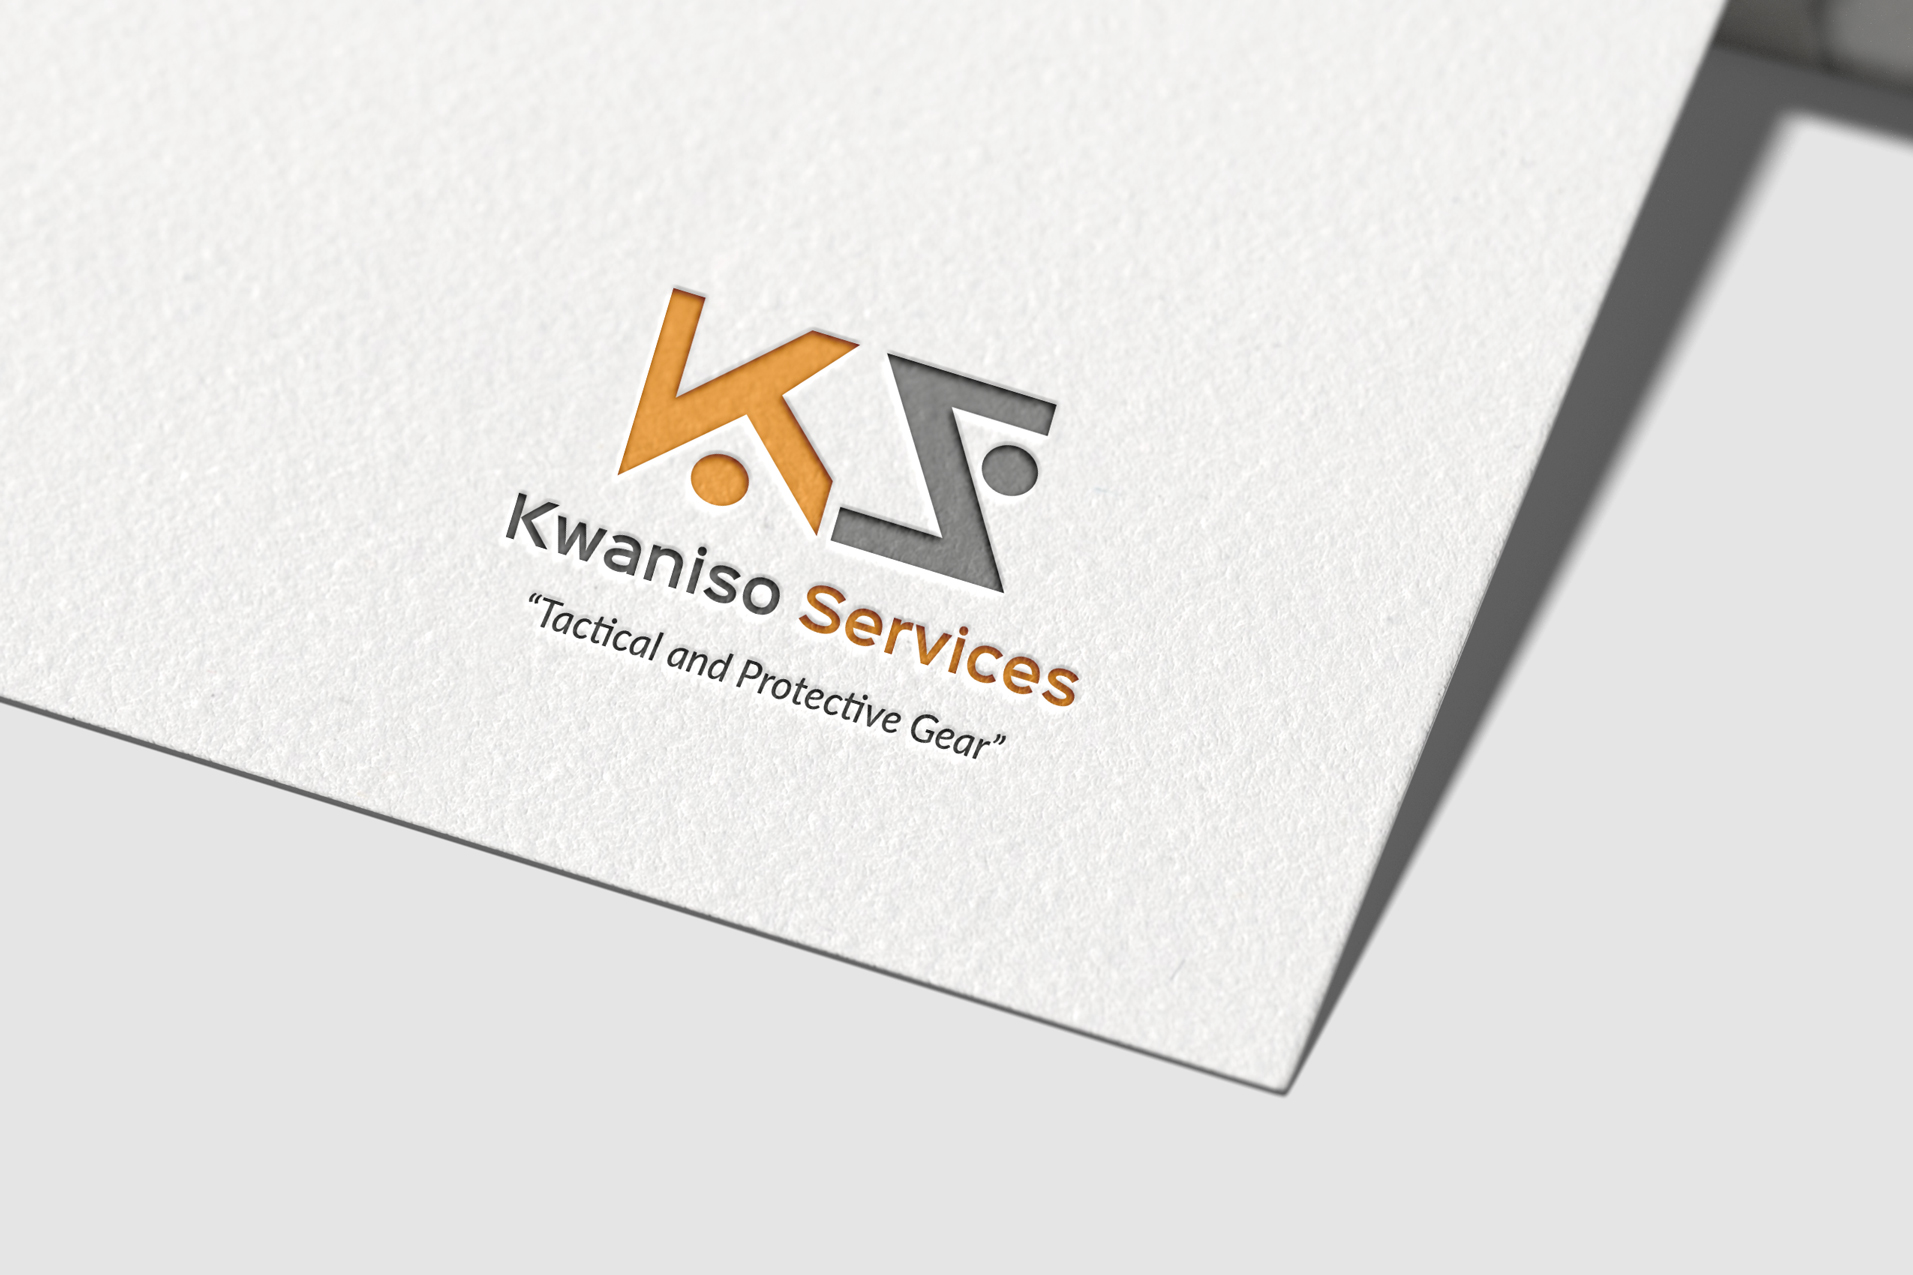 Kwaniso-Services-logo on paper